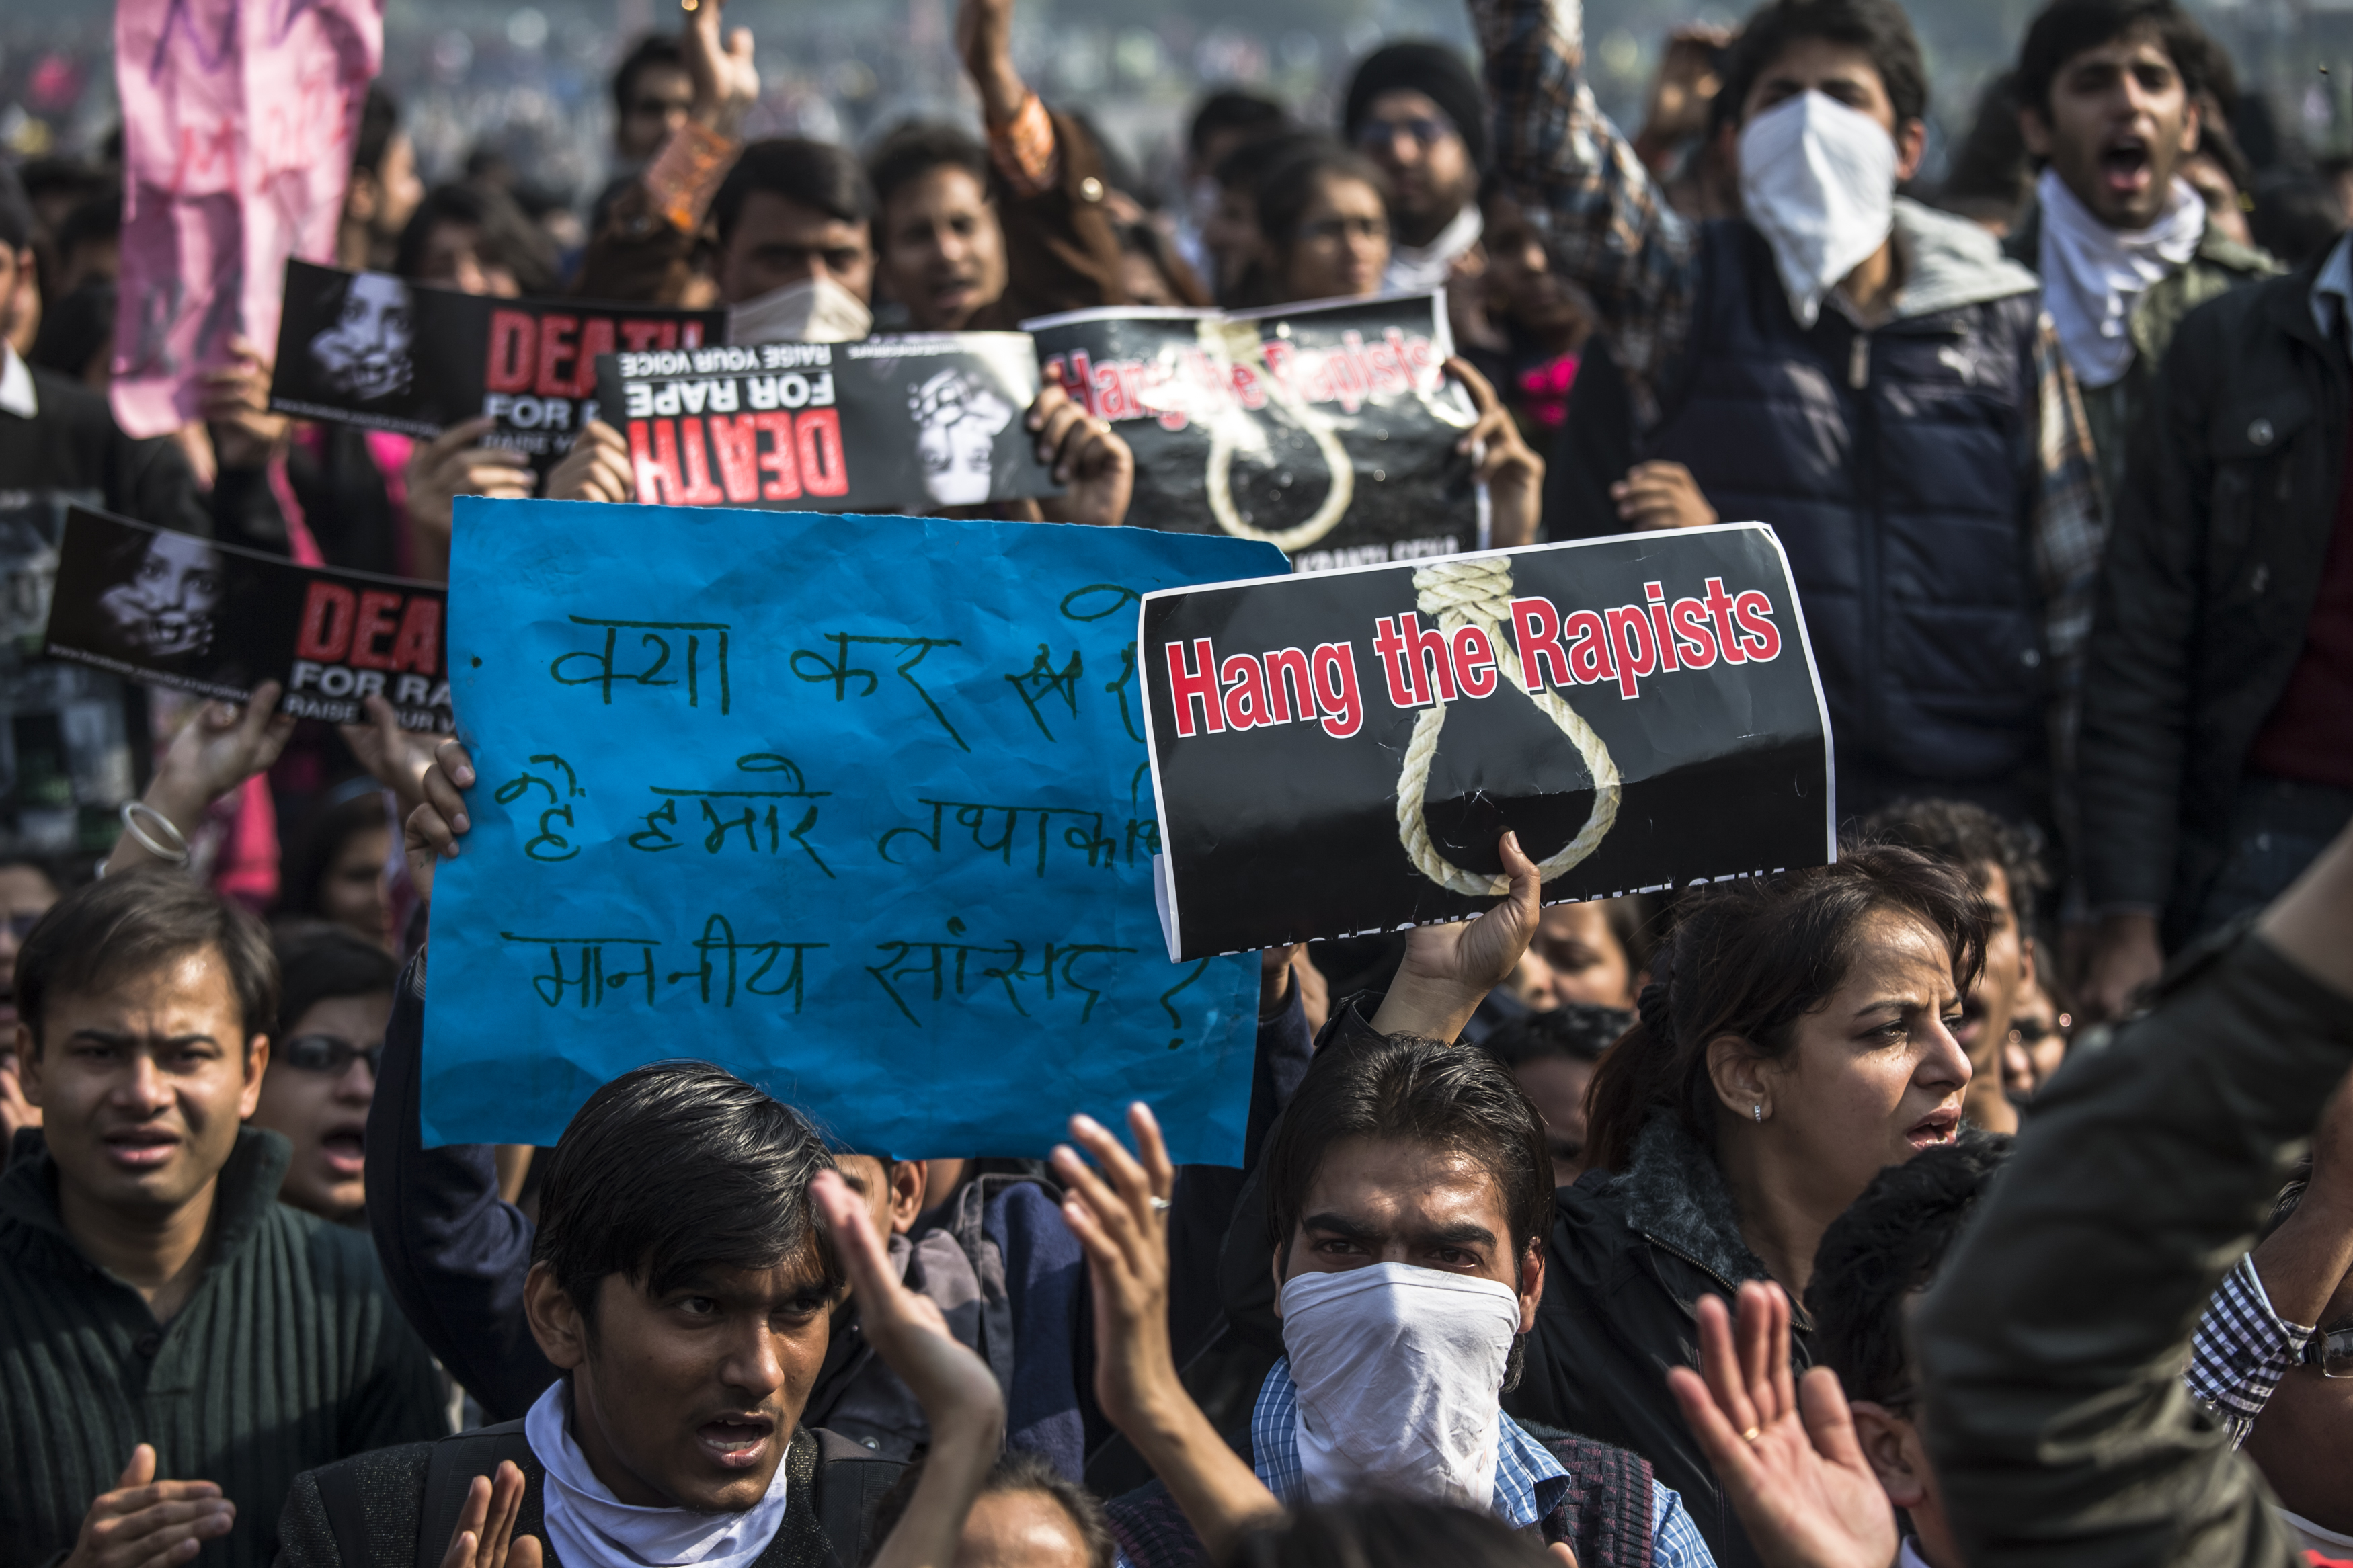 Students hold up placards as they chant slogans in front of a Police cordon during a protest against the Indian government's reaction to recent rape incidents in India in front of the Presidential Palace on December 22, 2012, in New Delhi, India. (Getty)